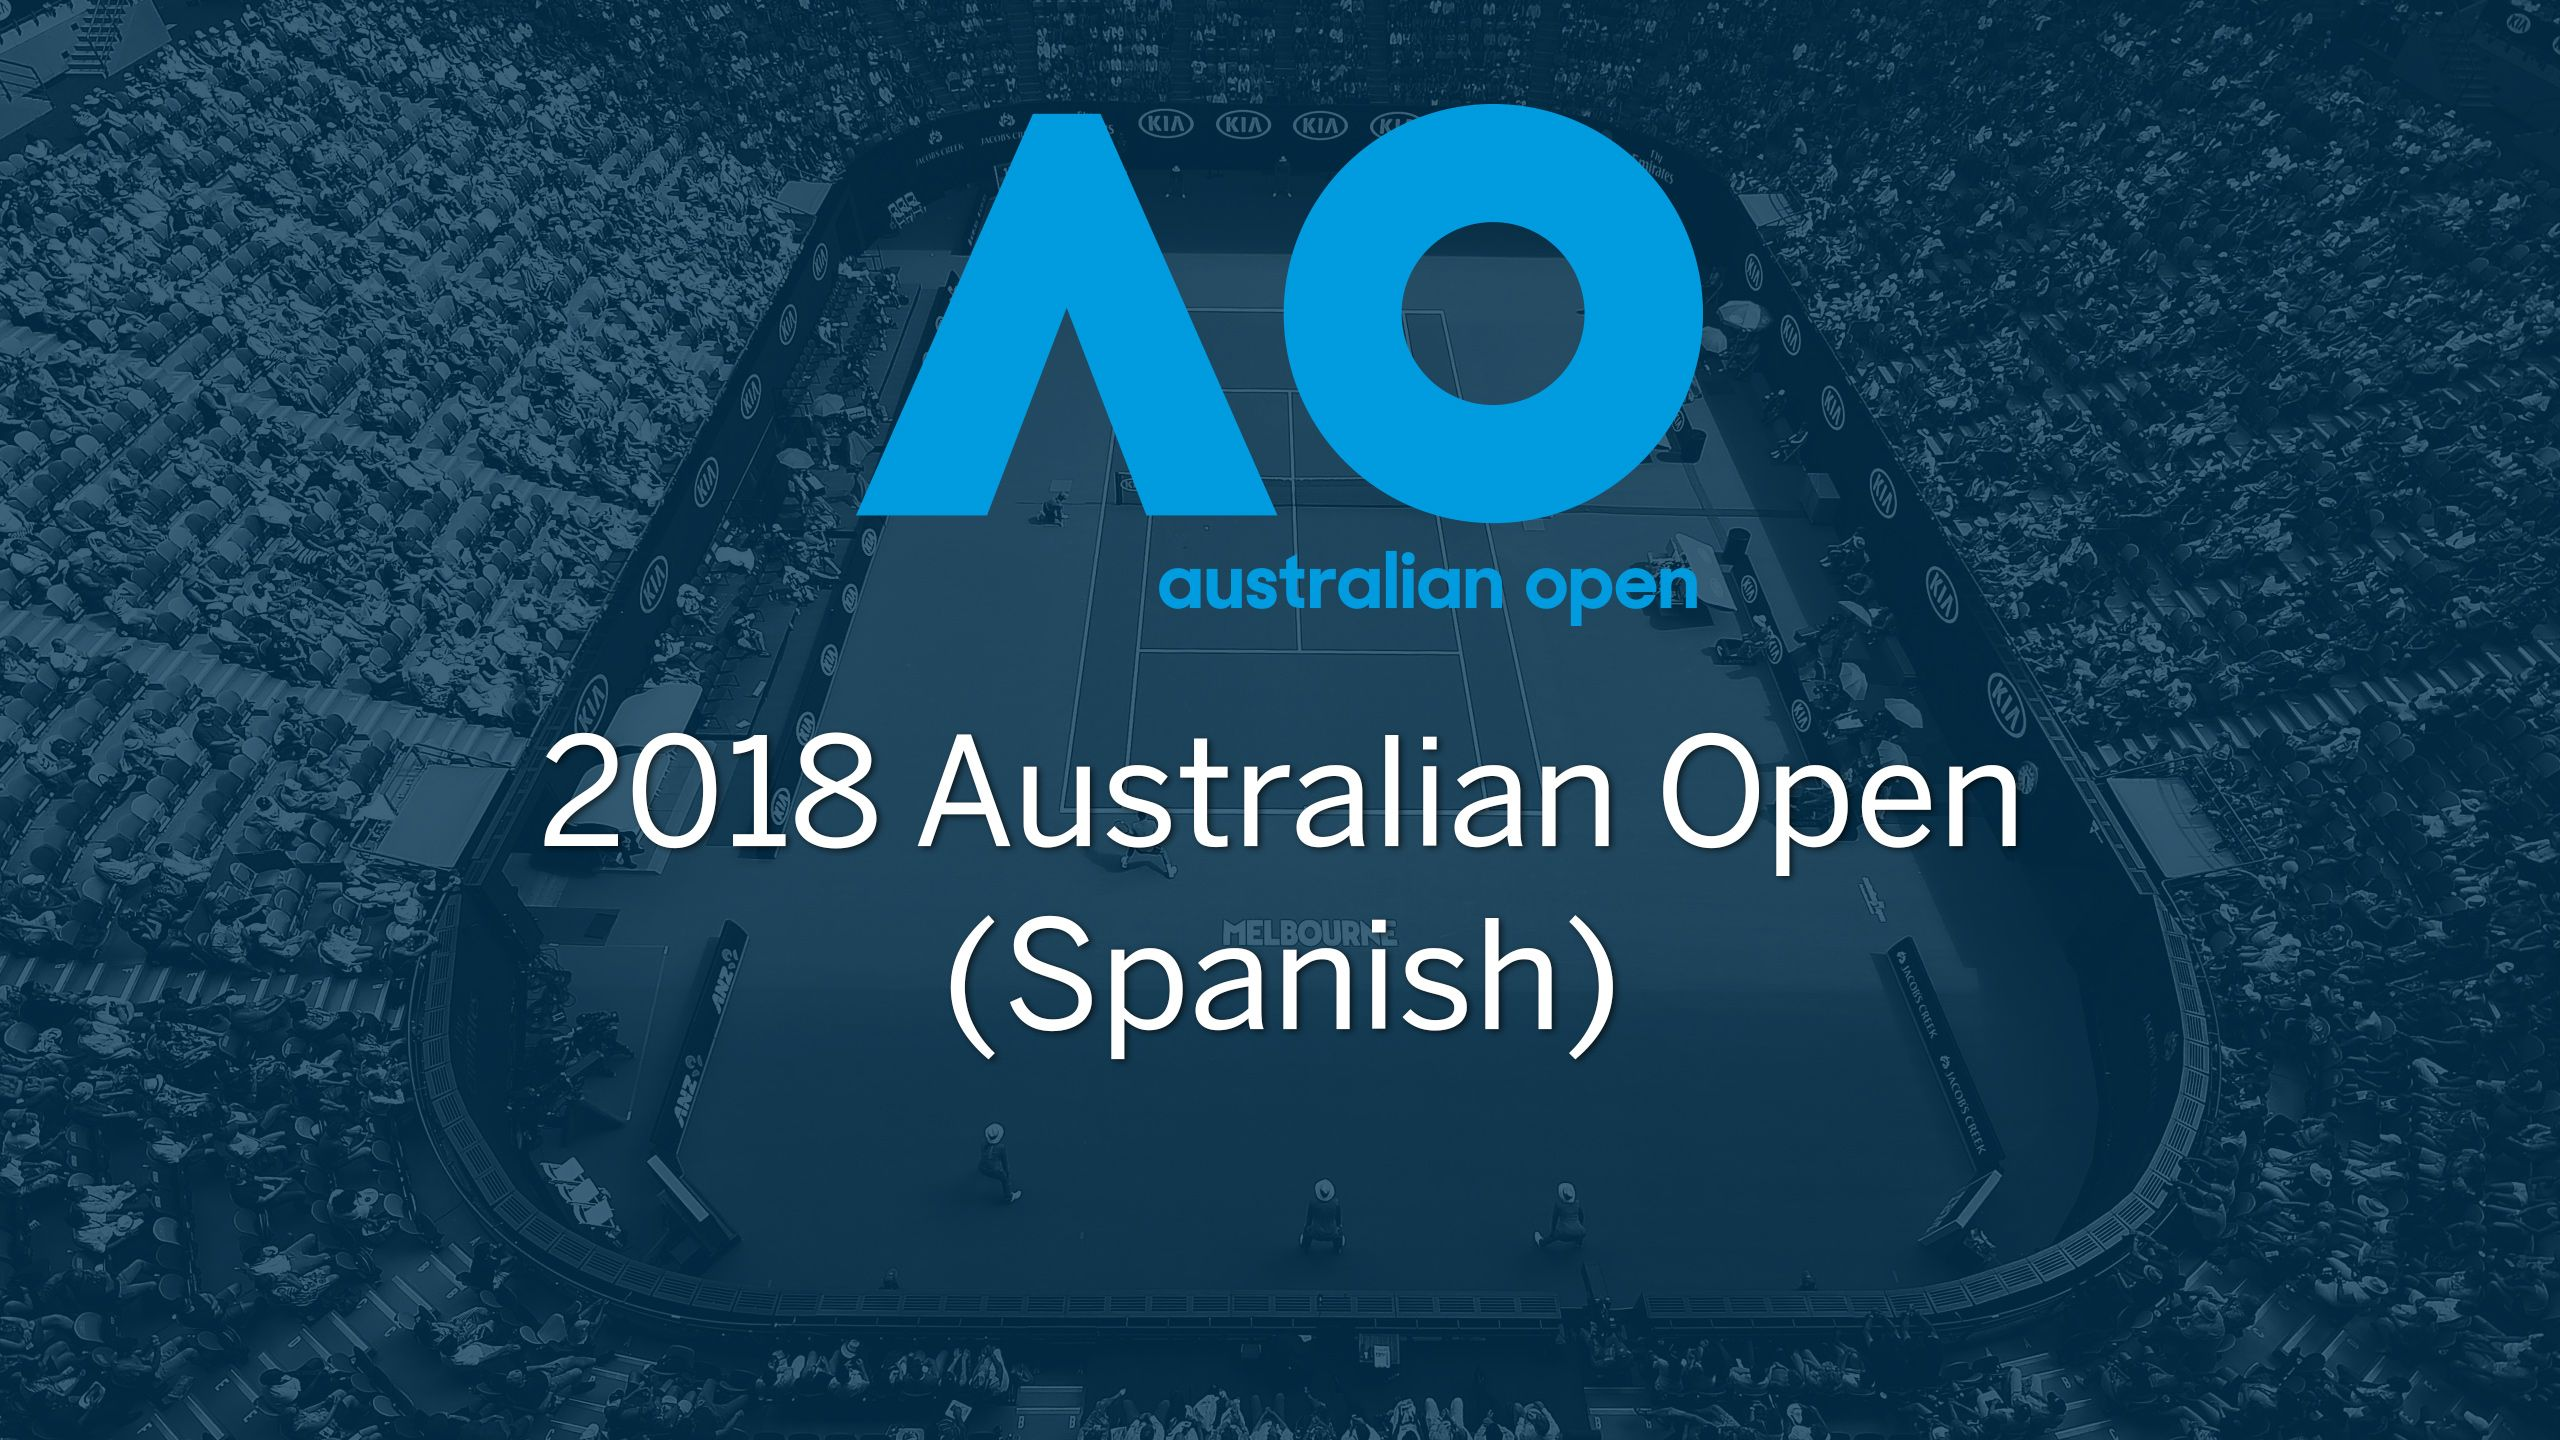 2018 Australian Open (Spanish-language)